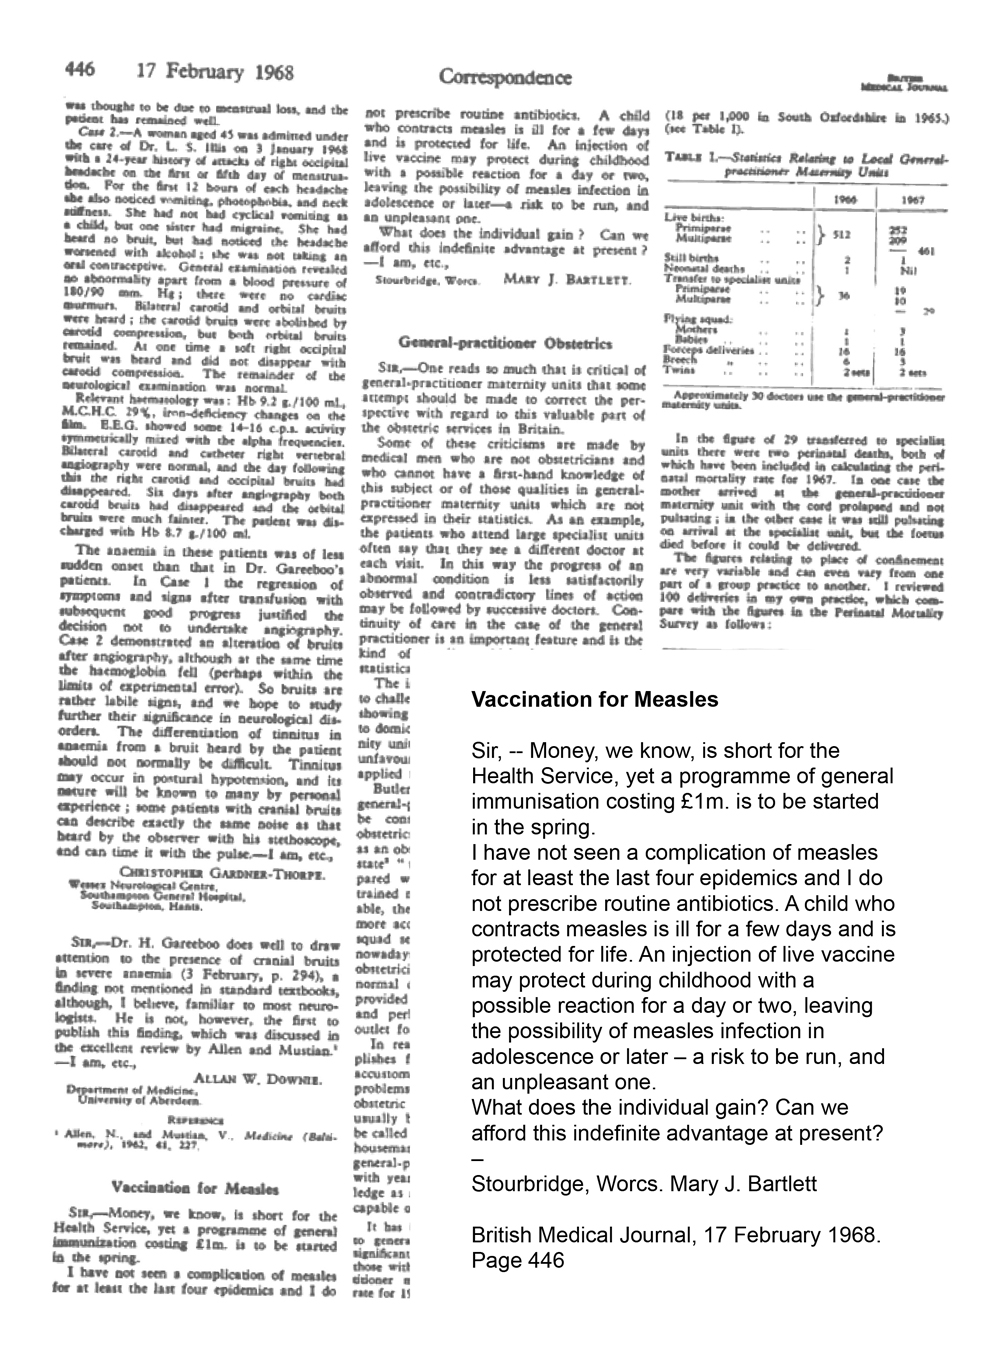 BMJ-Vaccination-for-Measles-1968